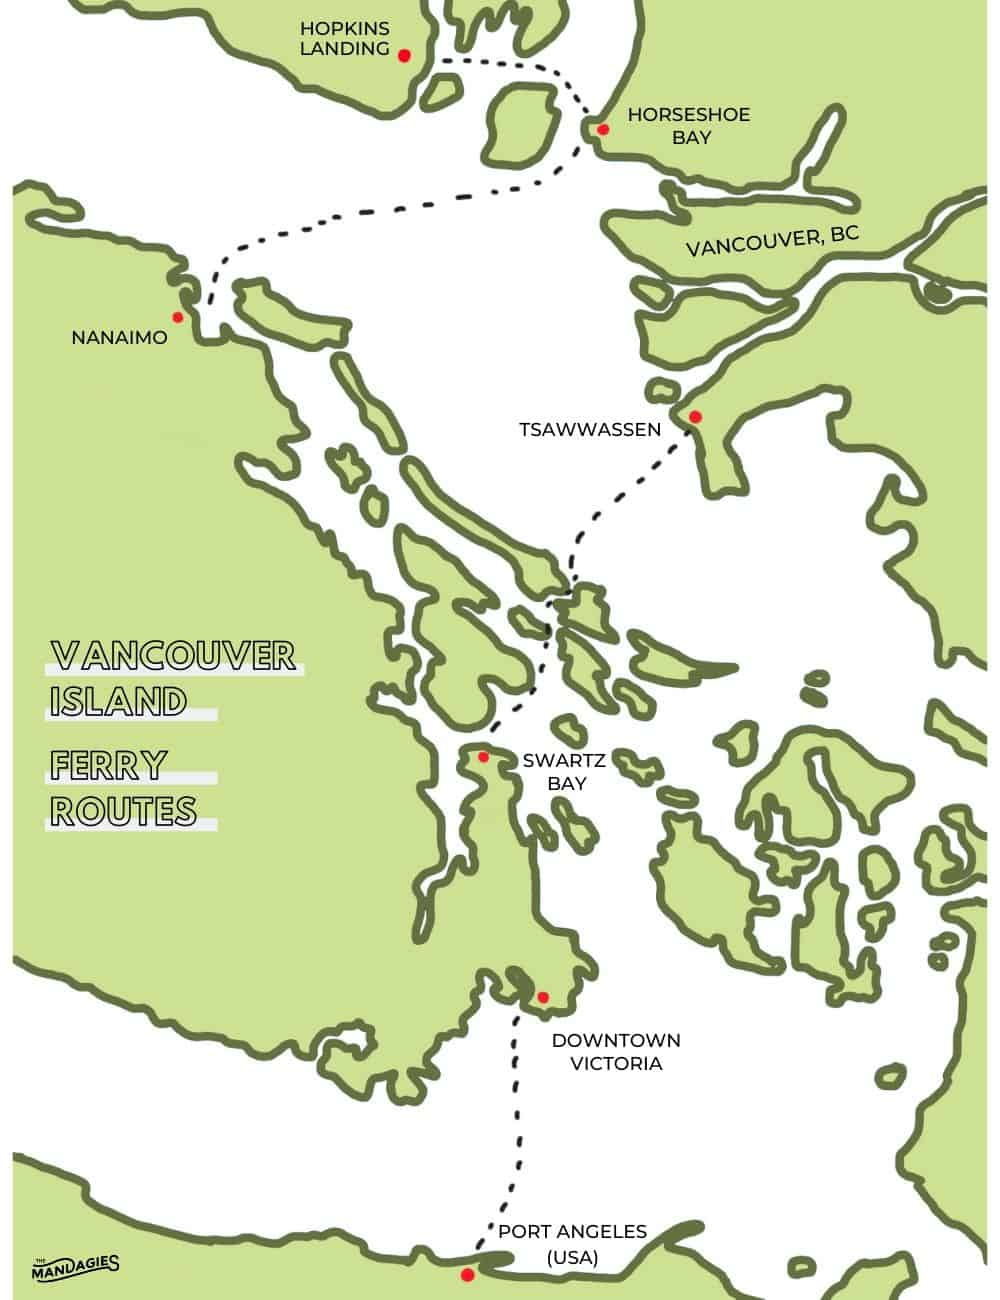 Ferry To Vancouver Island Route Map TheMandagies.com